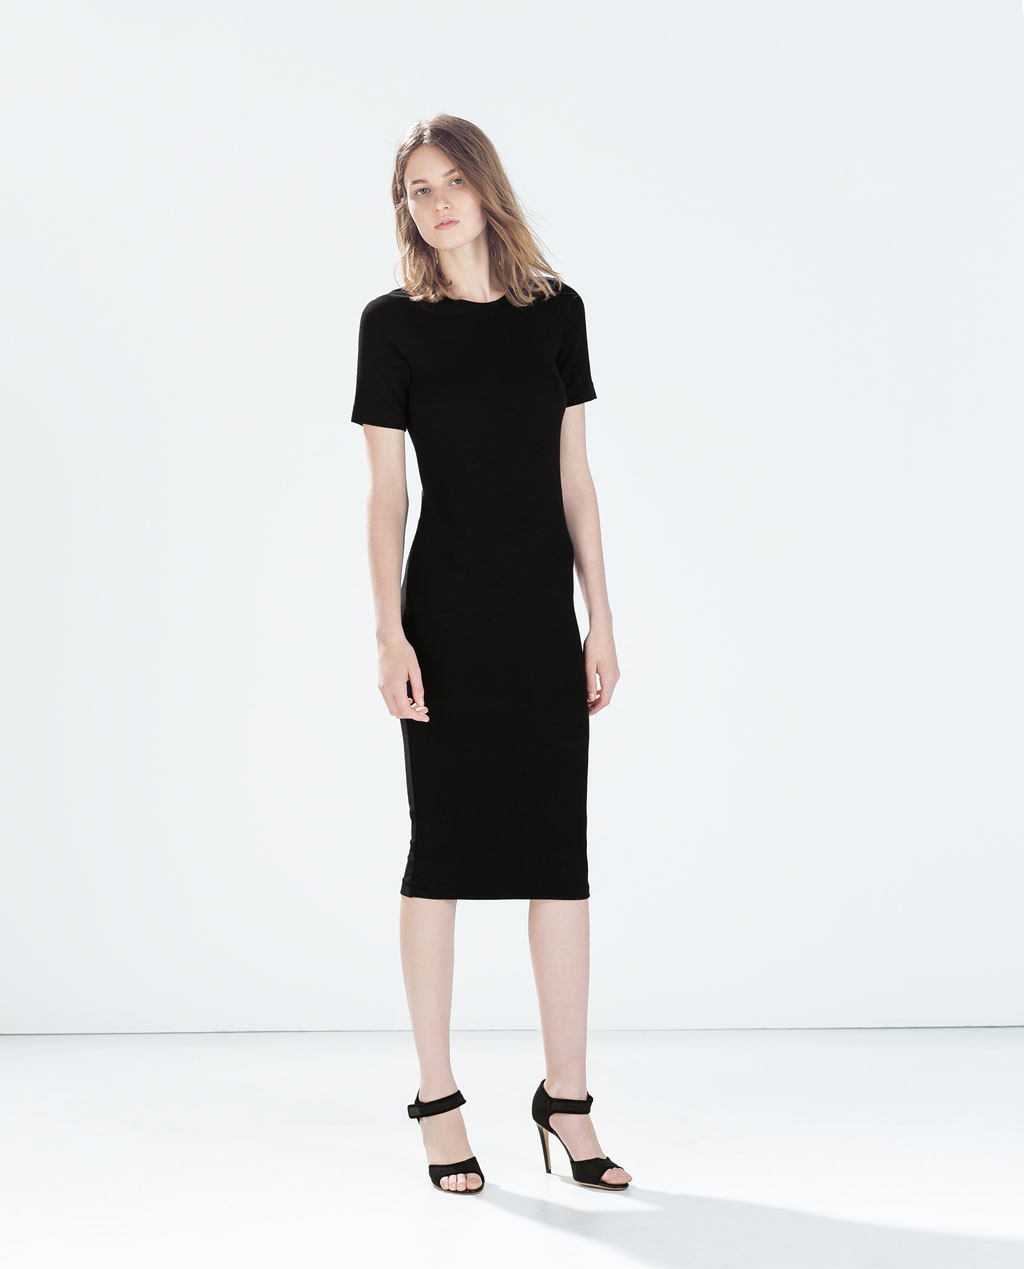 Long Dress - style: shift; length: below the knee; neckline: slash/boat neckline; fit: tight; pattern: plain; hip detail: draws attention to hips; predominant colour: black; occasions: casual, evening, work; fibres: viscose/rayon - stretch; sleeve length: short sleeve; sleeve style: standard; texture group: jersey - stretchy/drapey; season: a/w 2014; wardrobe: basic